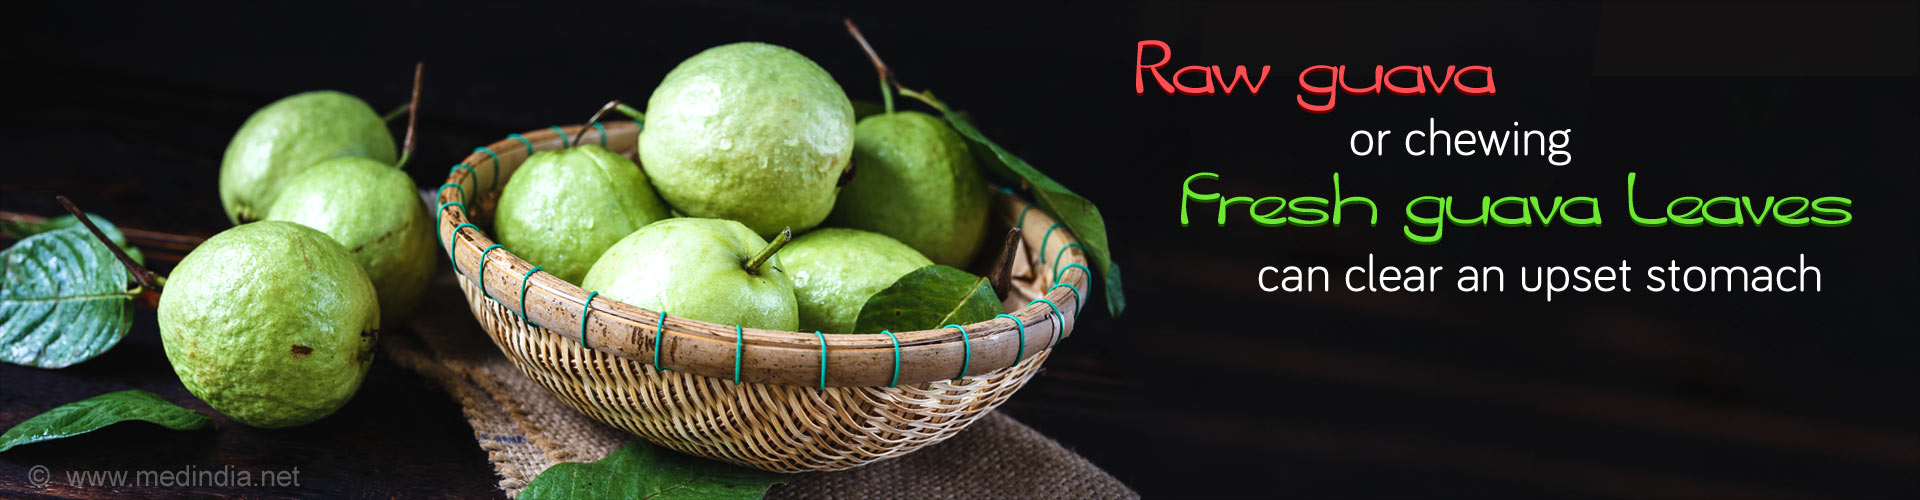 The Fruit in News - Guava